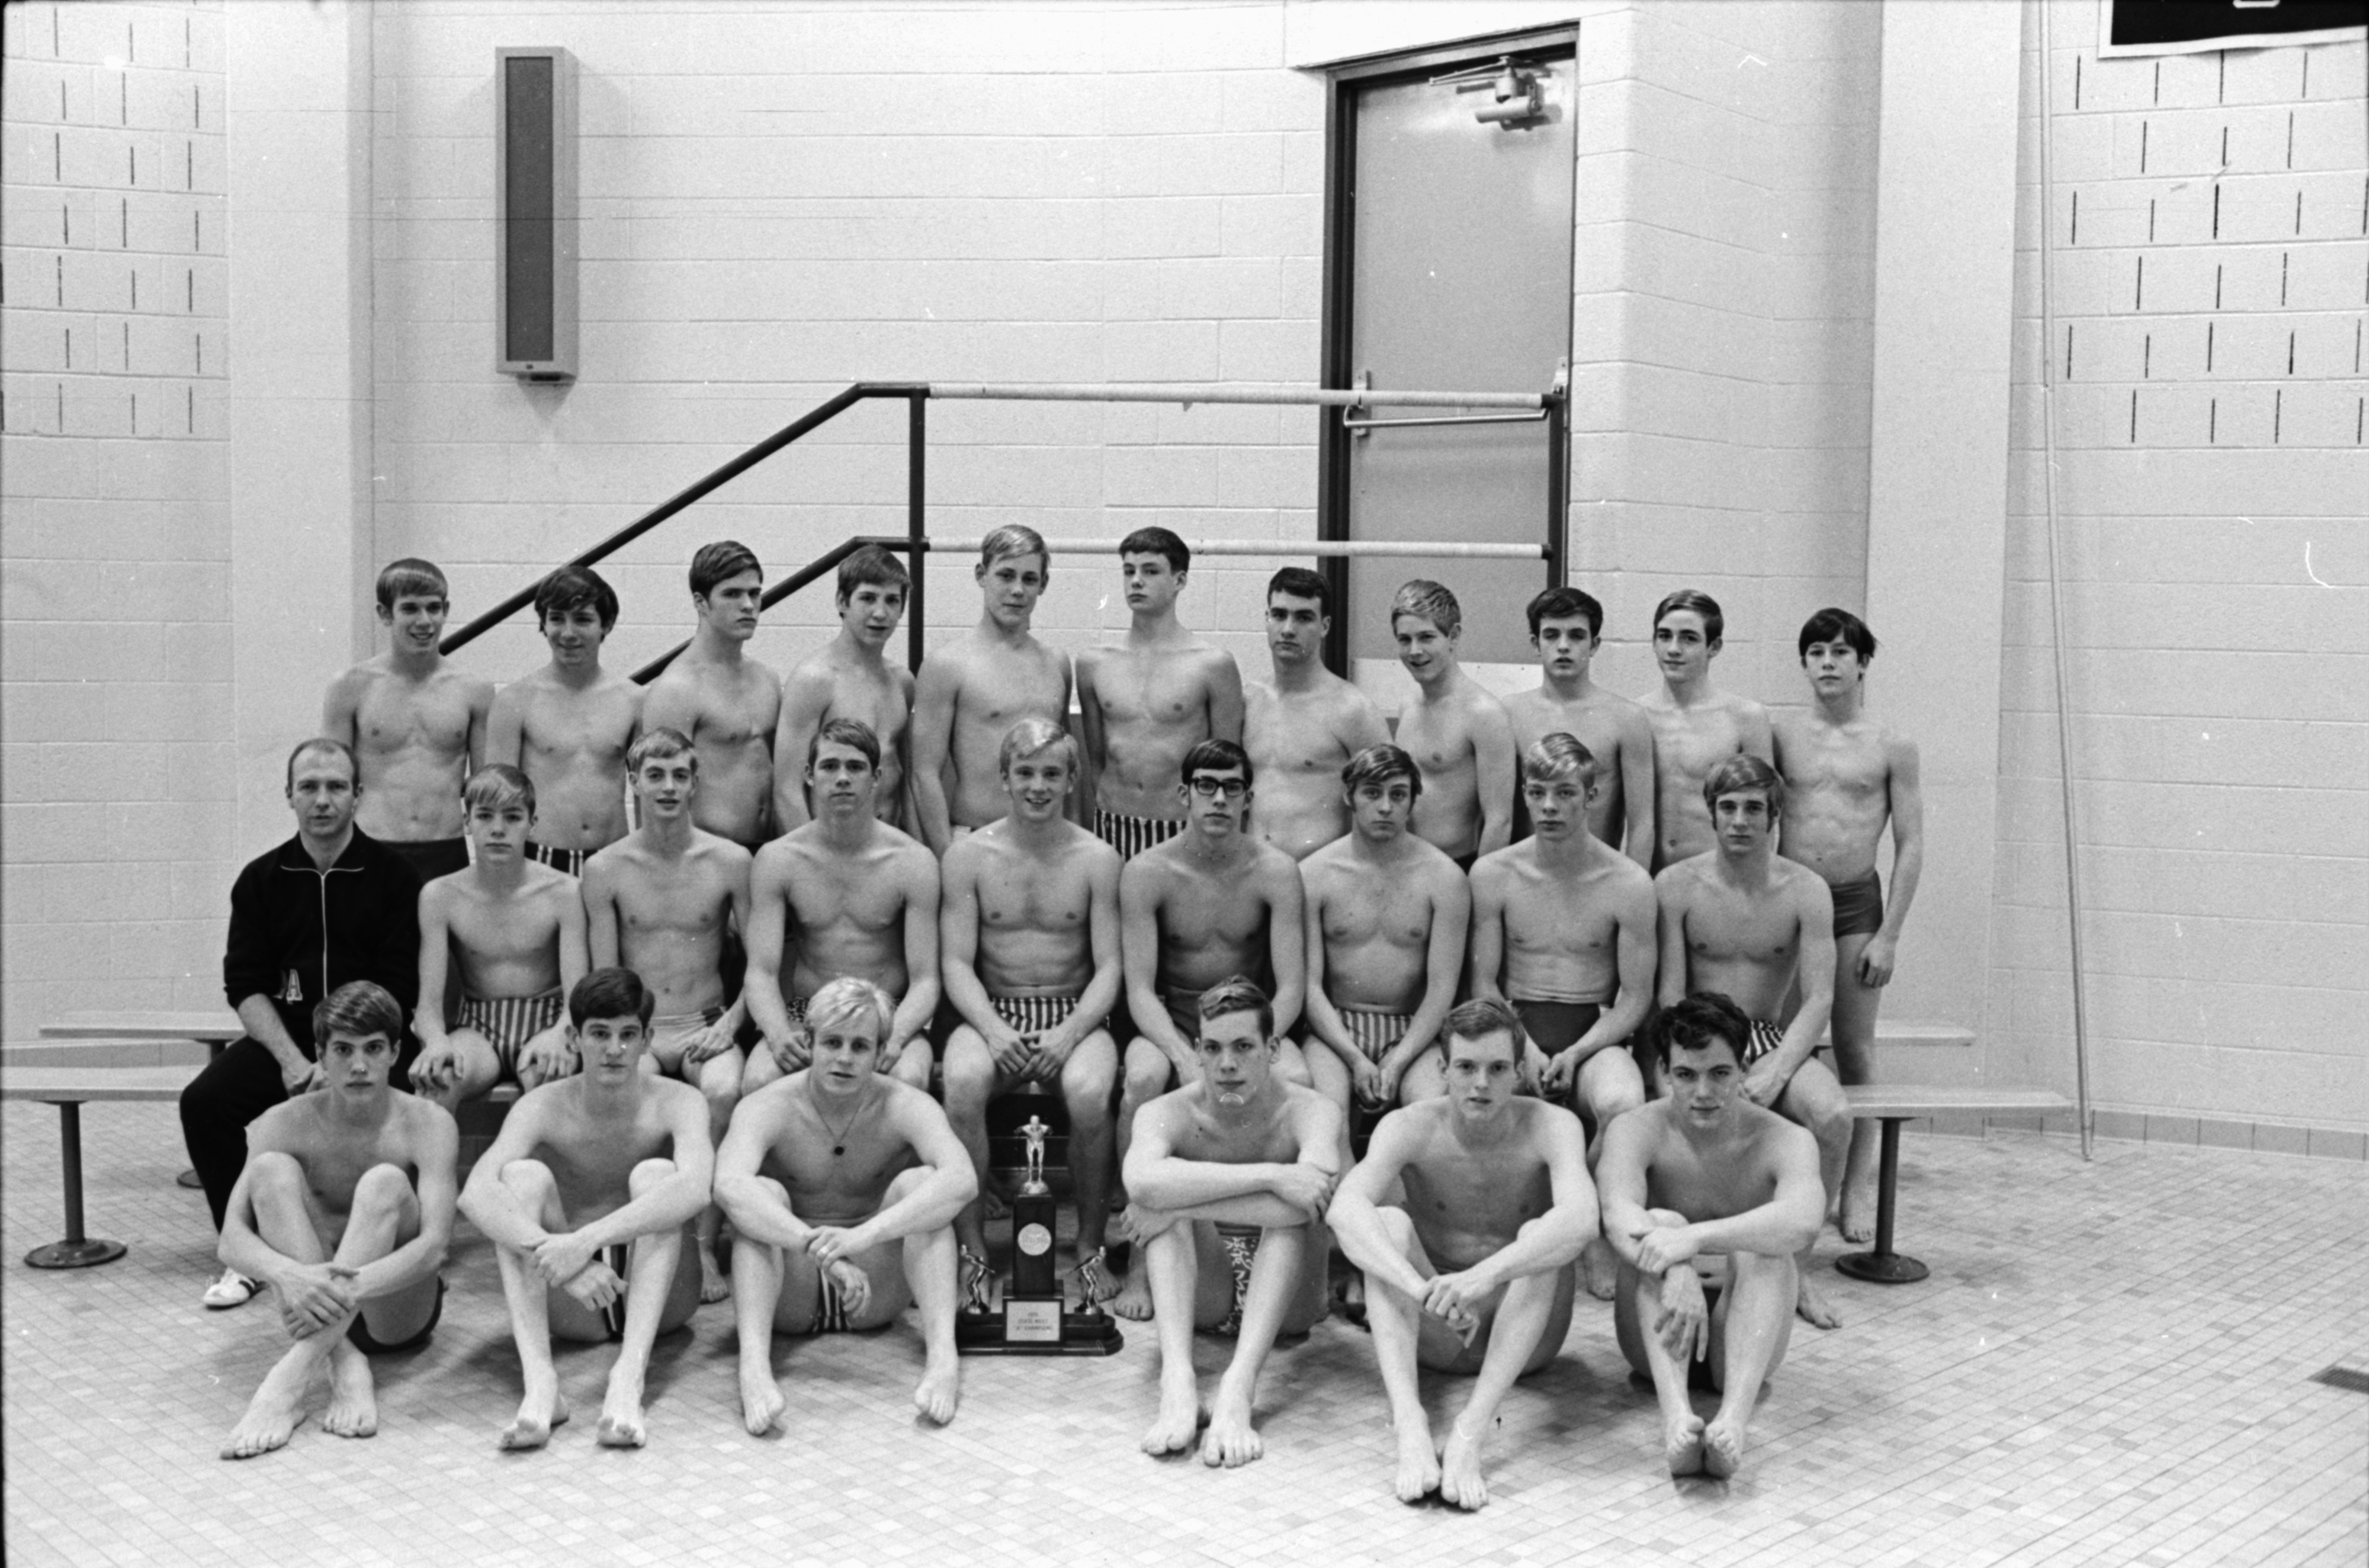 Huron High School Swim Team State Champions, March 1970 image